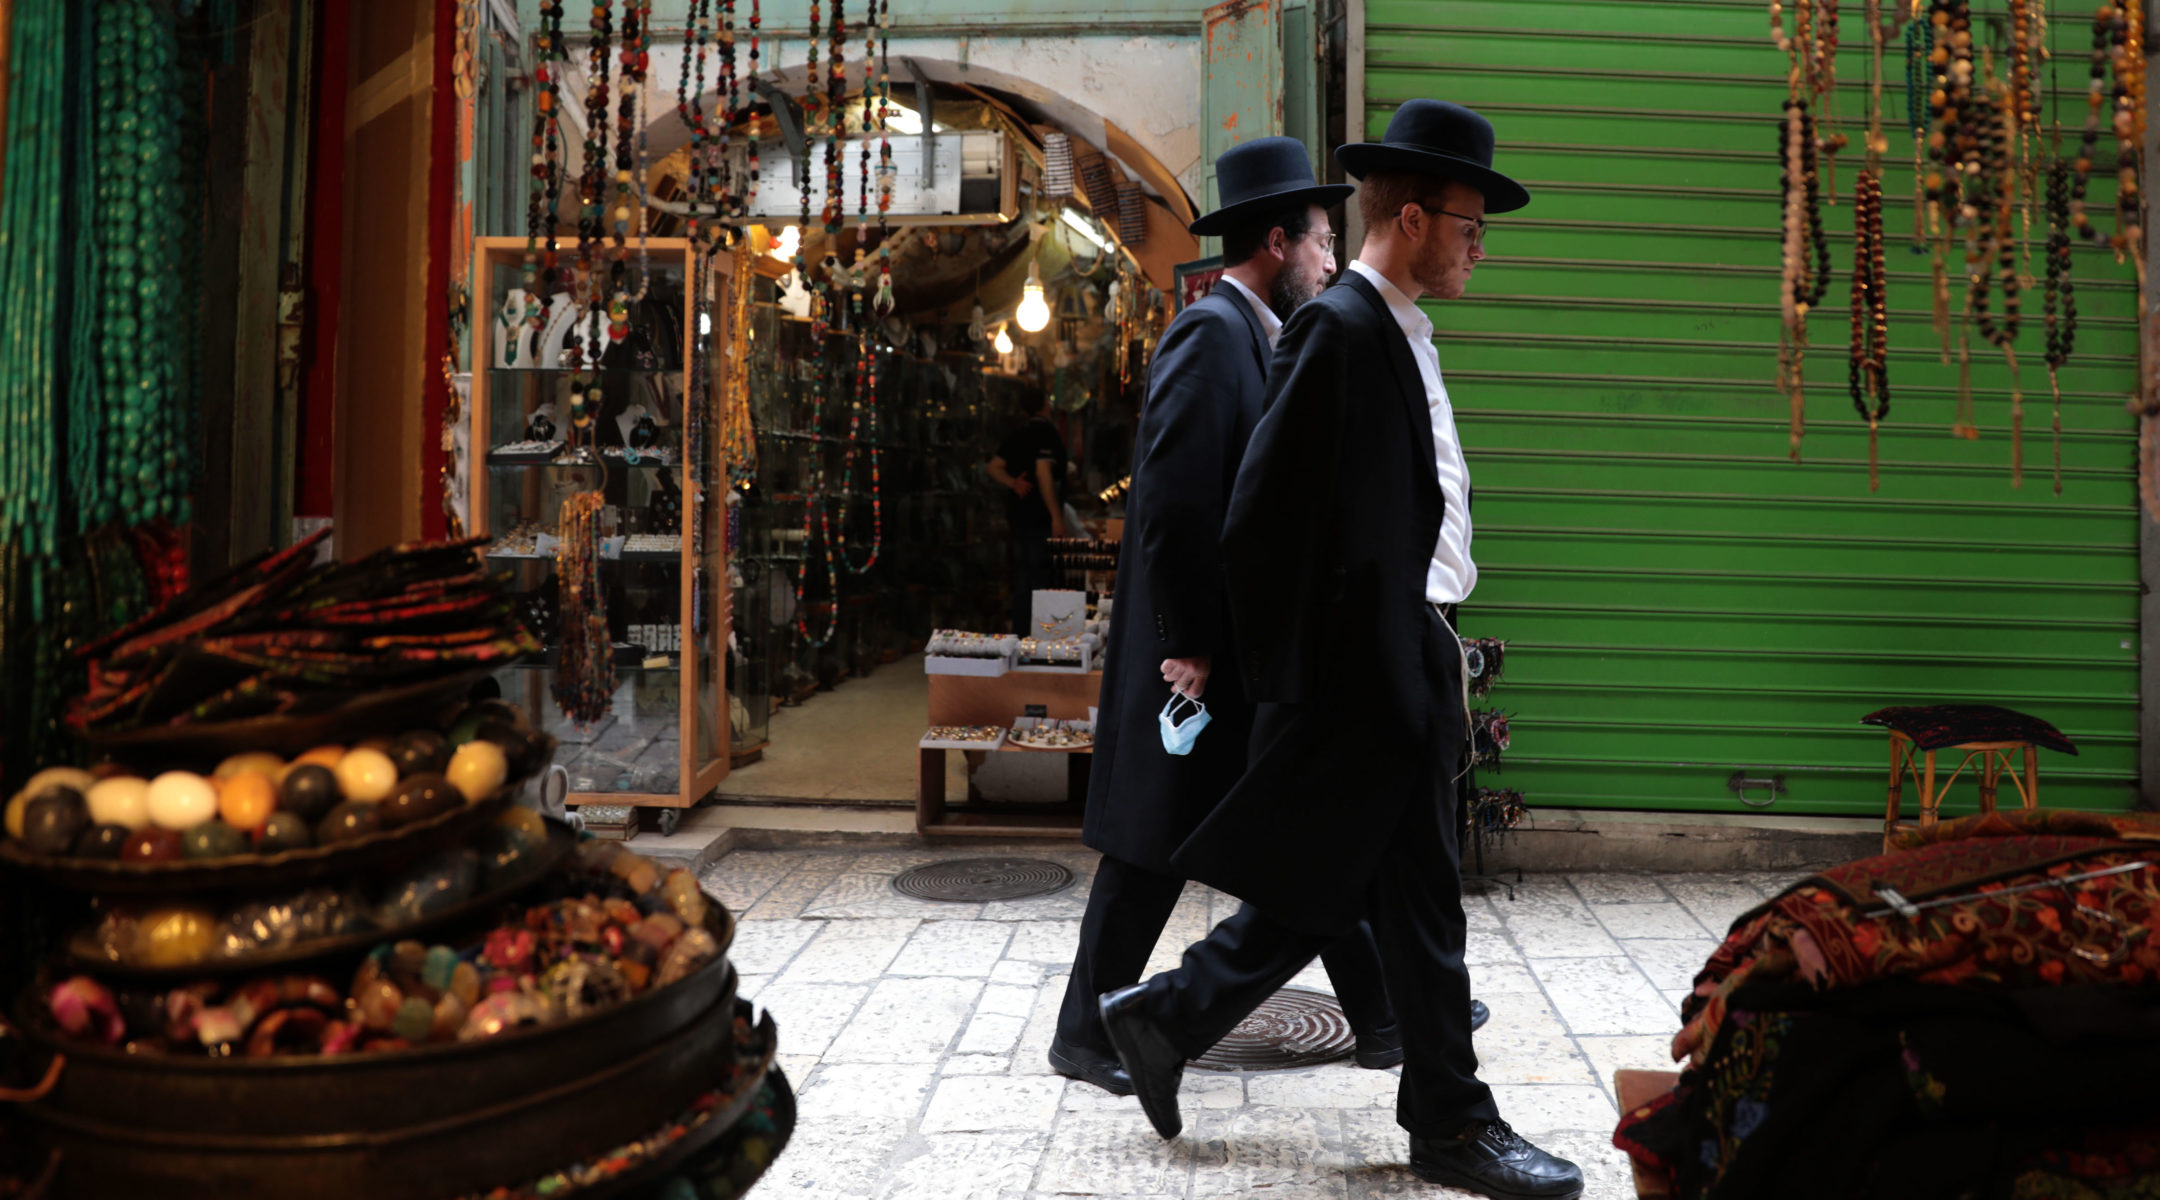 Secular Jews are starting to understand the haredi Orthodox — thanks to Israeli television - Jewish Telegraphic Agency